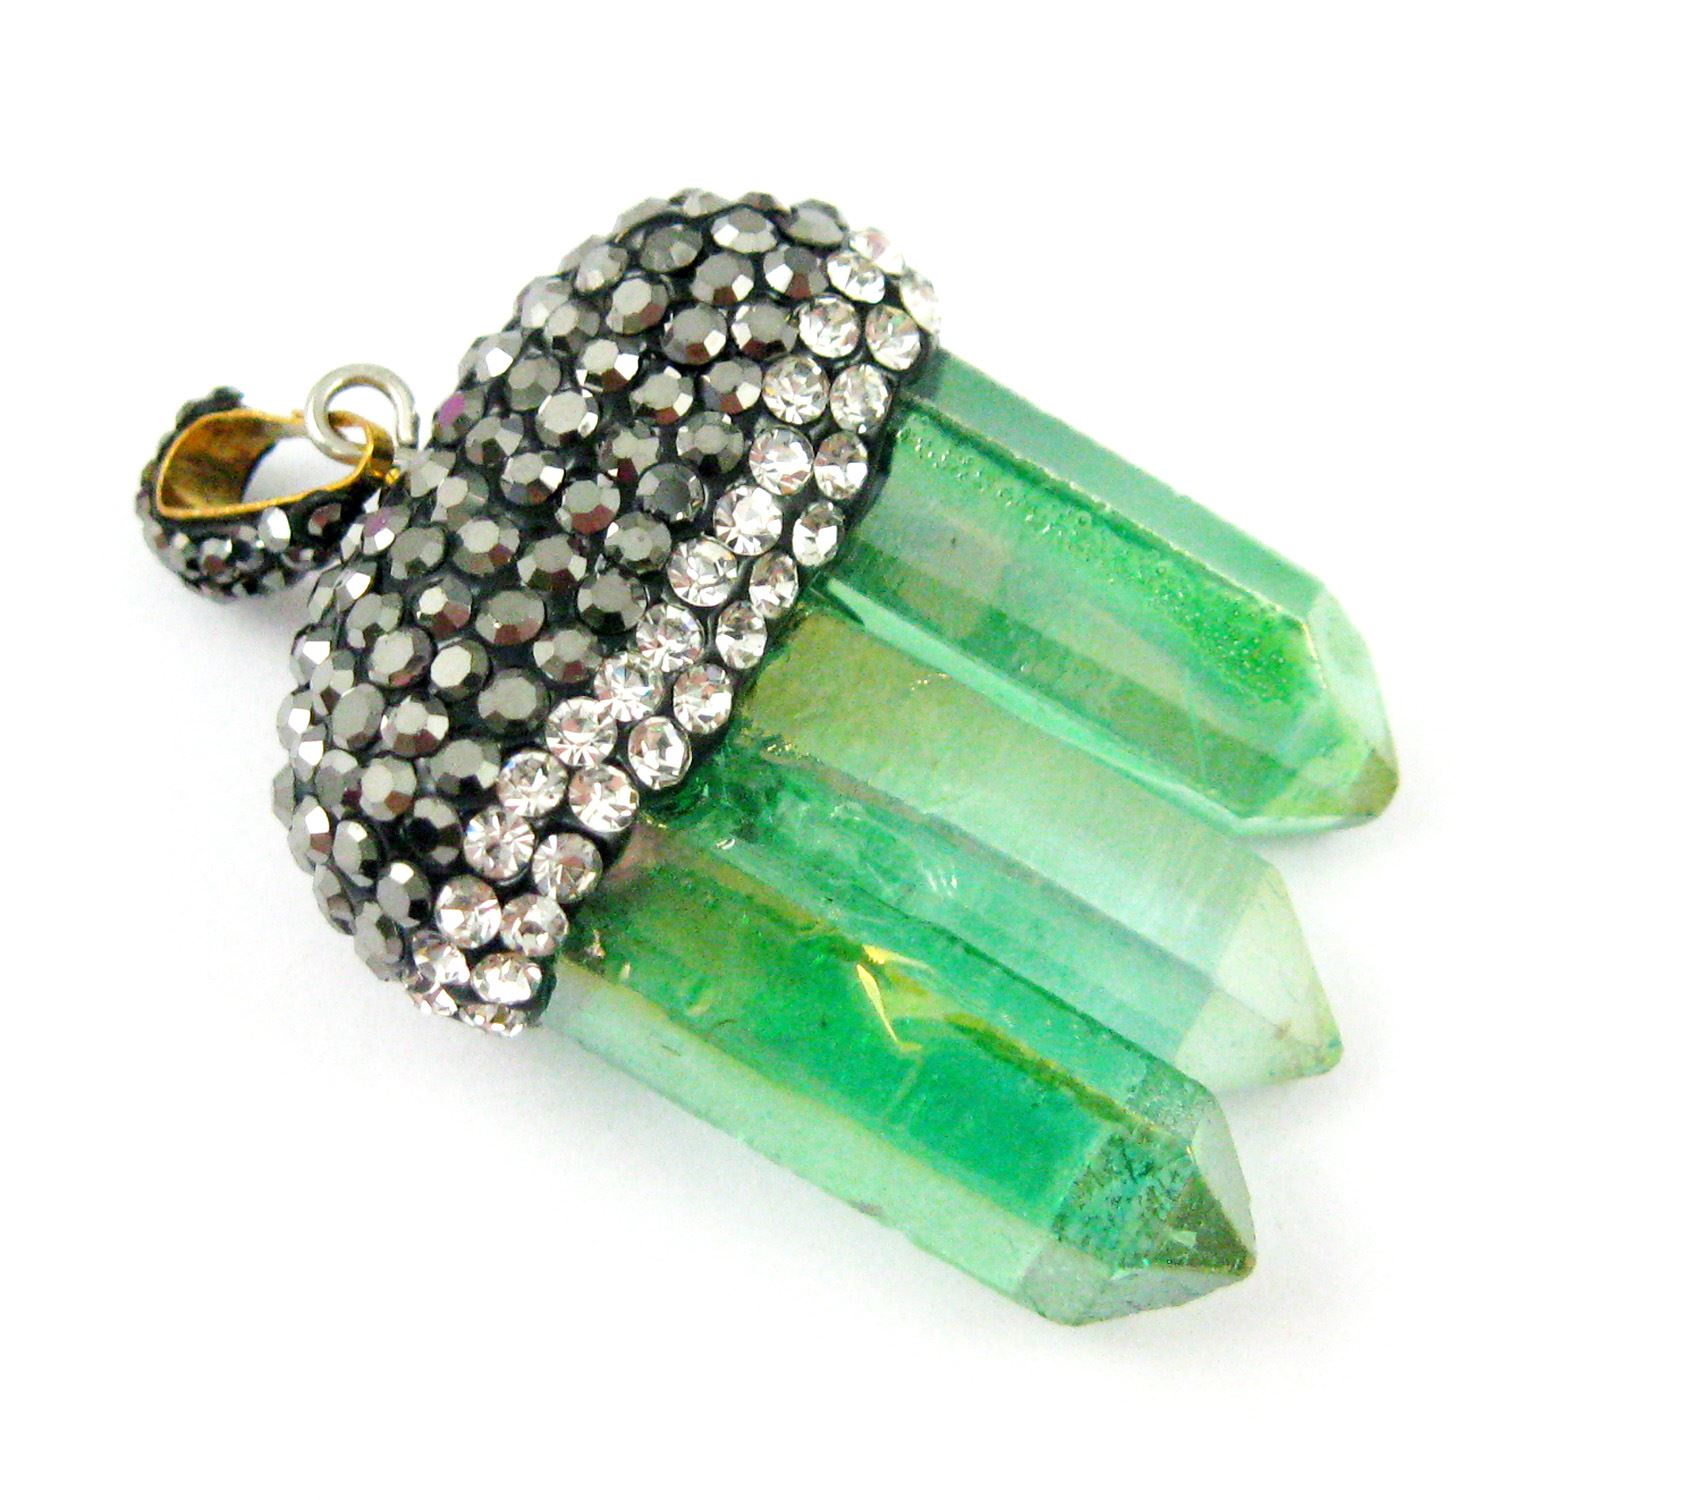 Natural Aura Quartz Tri Crystal Pave Pendant - Tri Pendulum Spike Pendant - Green Crystal- 45mm